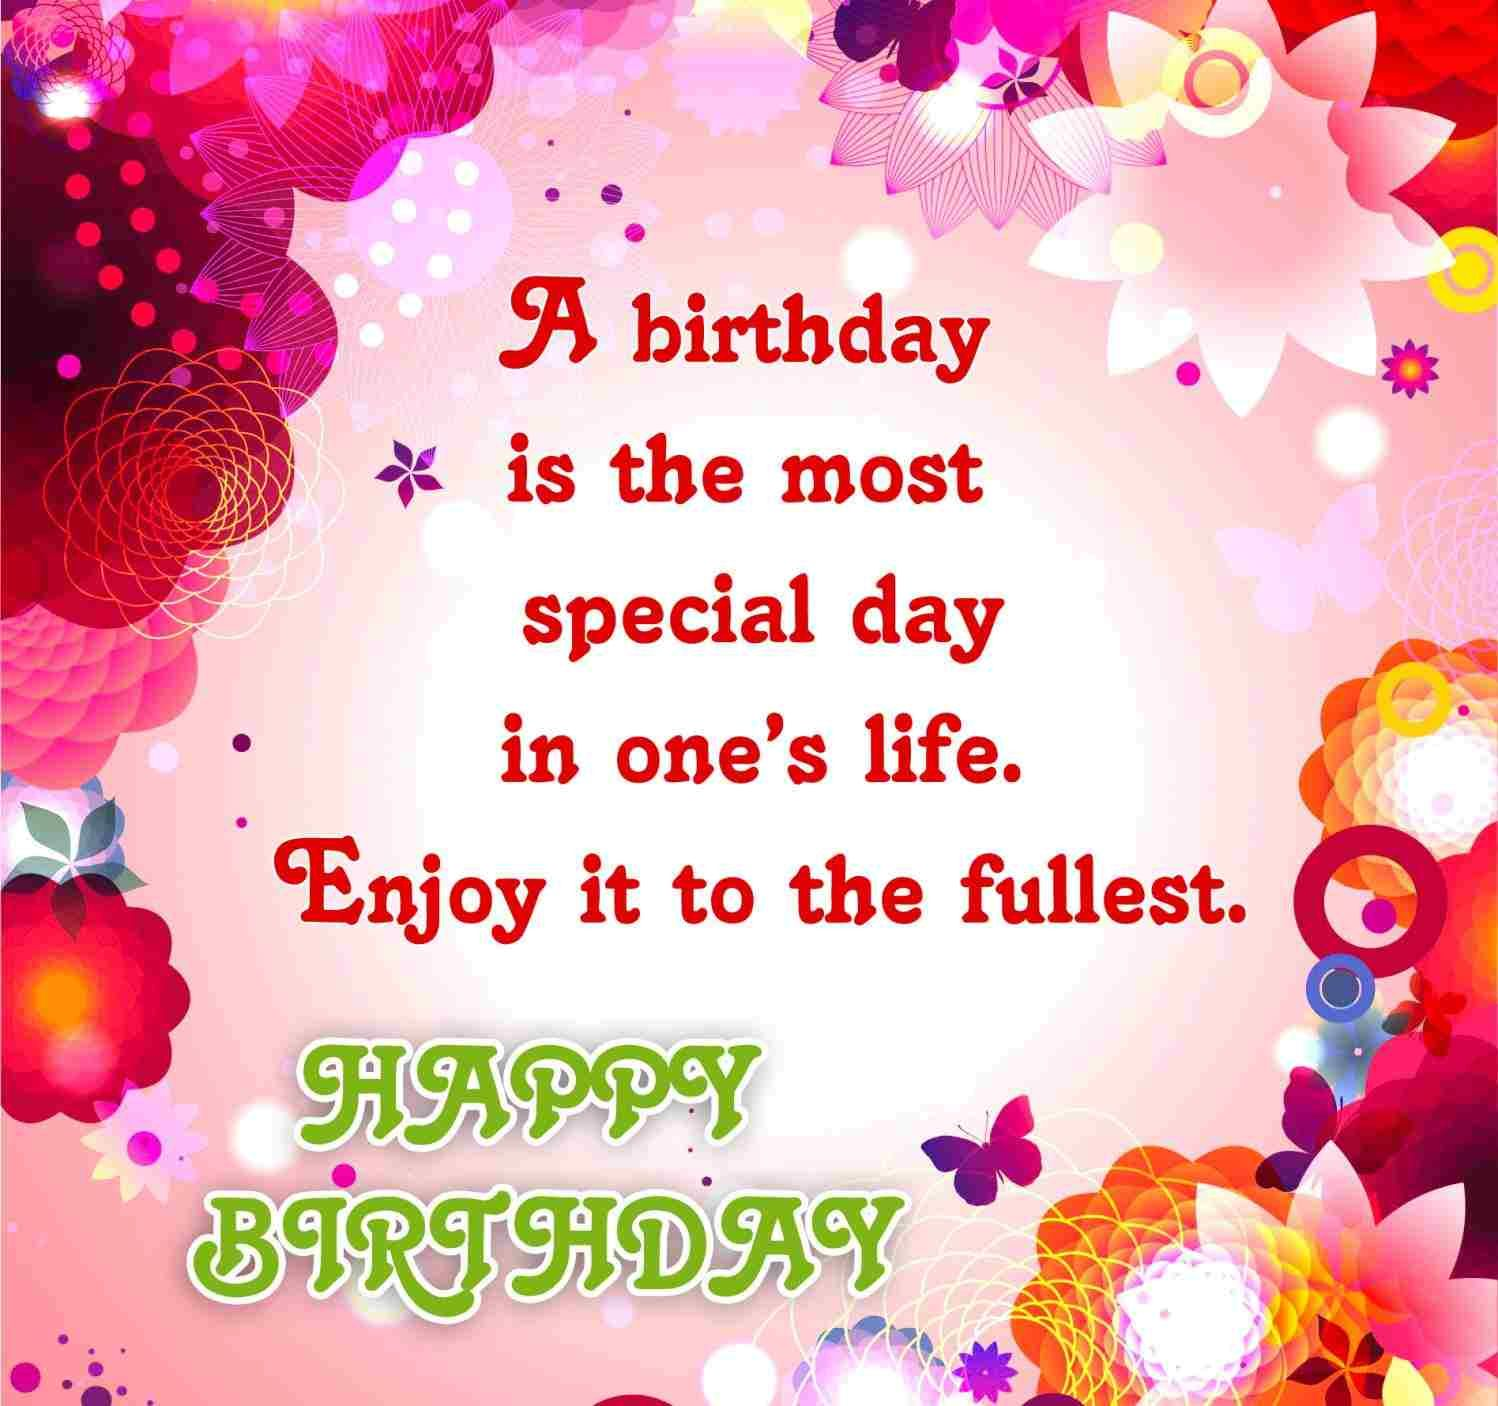 Top happy birthday wishes for a friend design sensational happy top happy birthday wishes for a friend design sensational happy birthday wishes for a friend happy birthday dear friend happy birthday pictures birthday izmirmasajfo Image collections